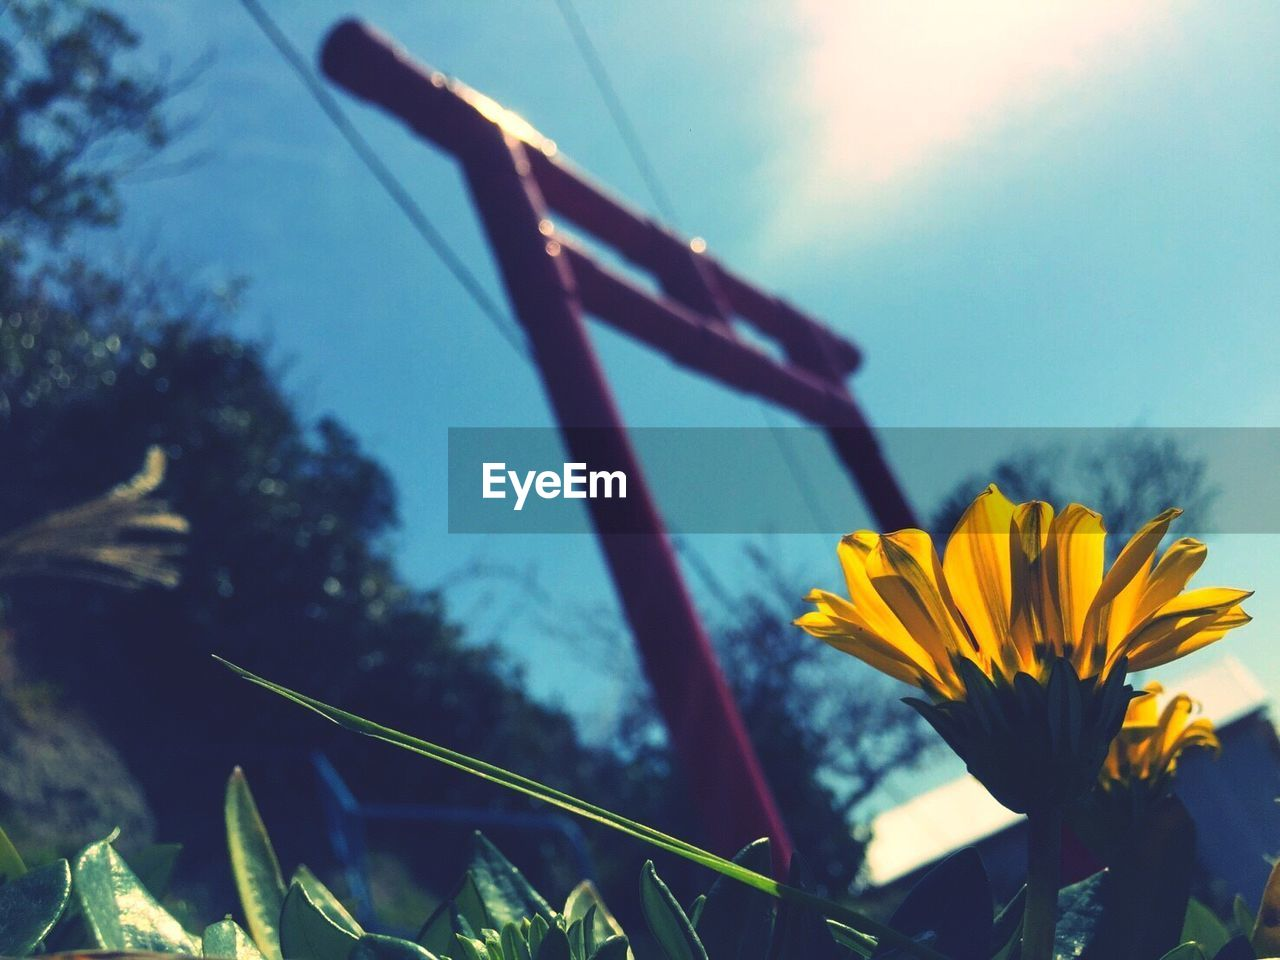 flower, growth, nature, plant, fragility, petal, yellow, outdoors, stem, no people, low angle view, beauty in nature, sky, day, flower head, close-up, blooming, freshness, focus on foreground, sunflower, tree